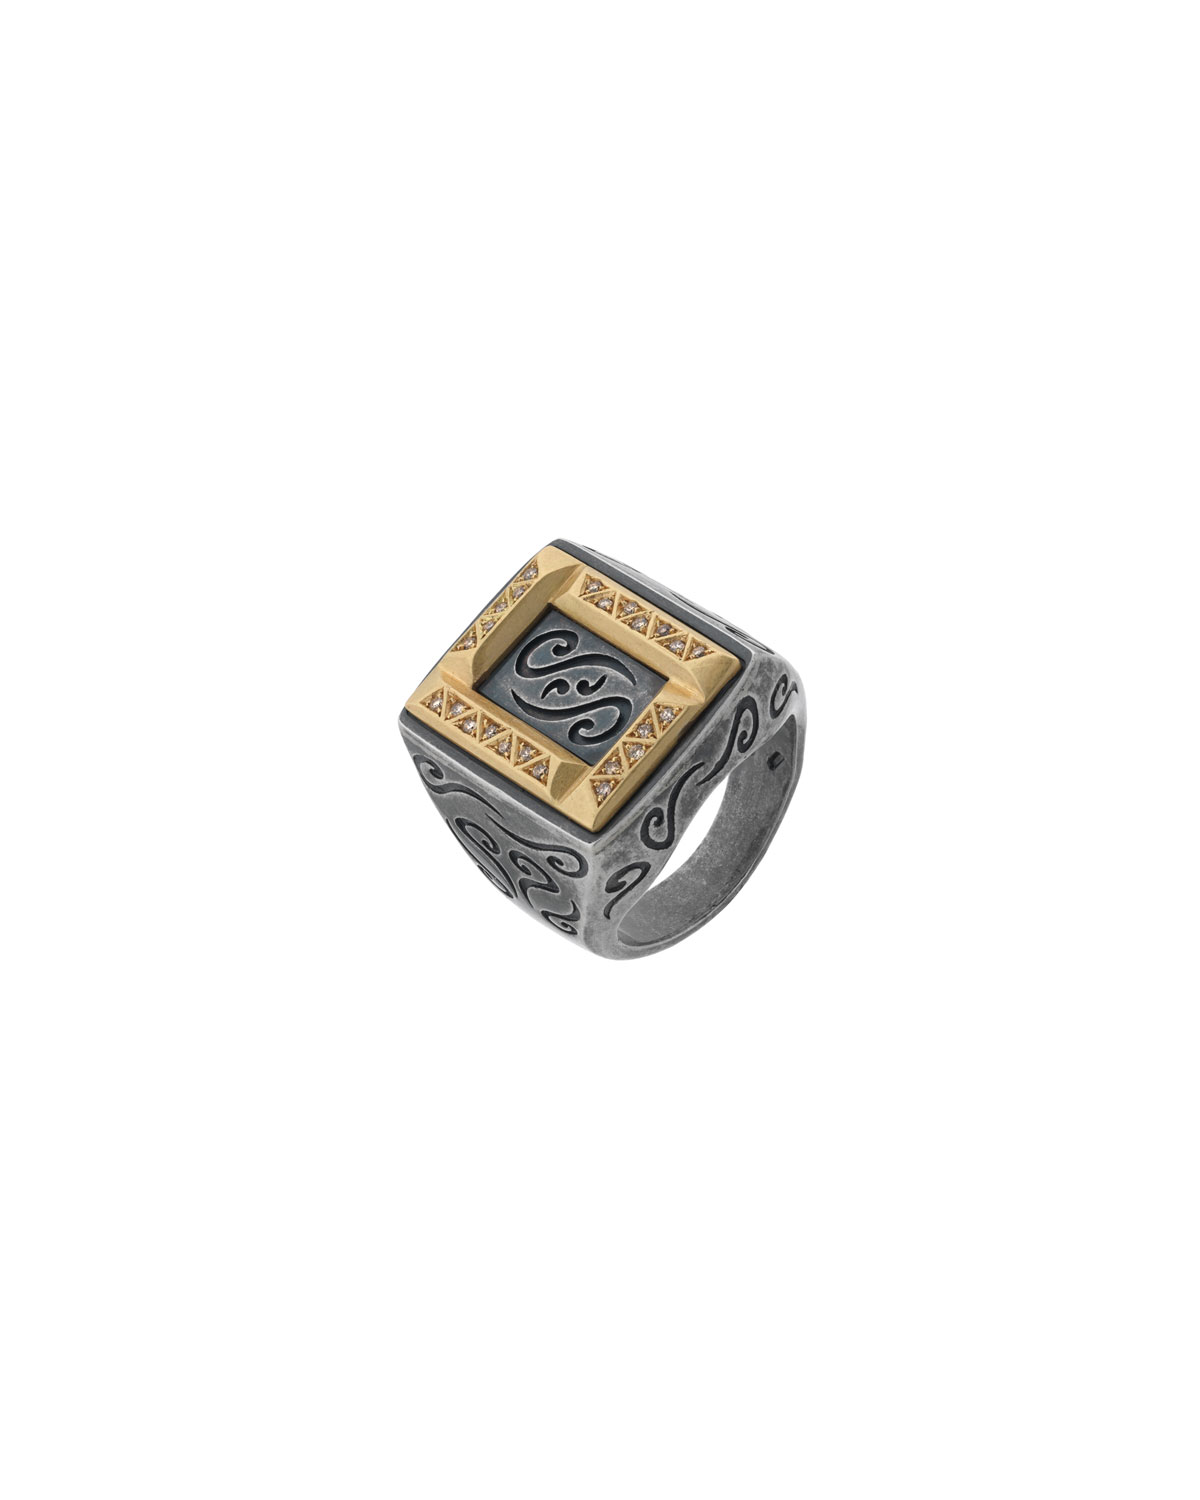 MARCO DAL MASO MEN'S ARA RECTANGULAR RING W/ DIAMONDS, SIZE 10.5